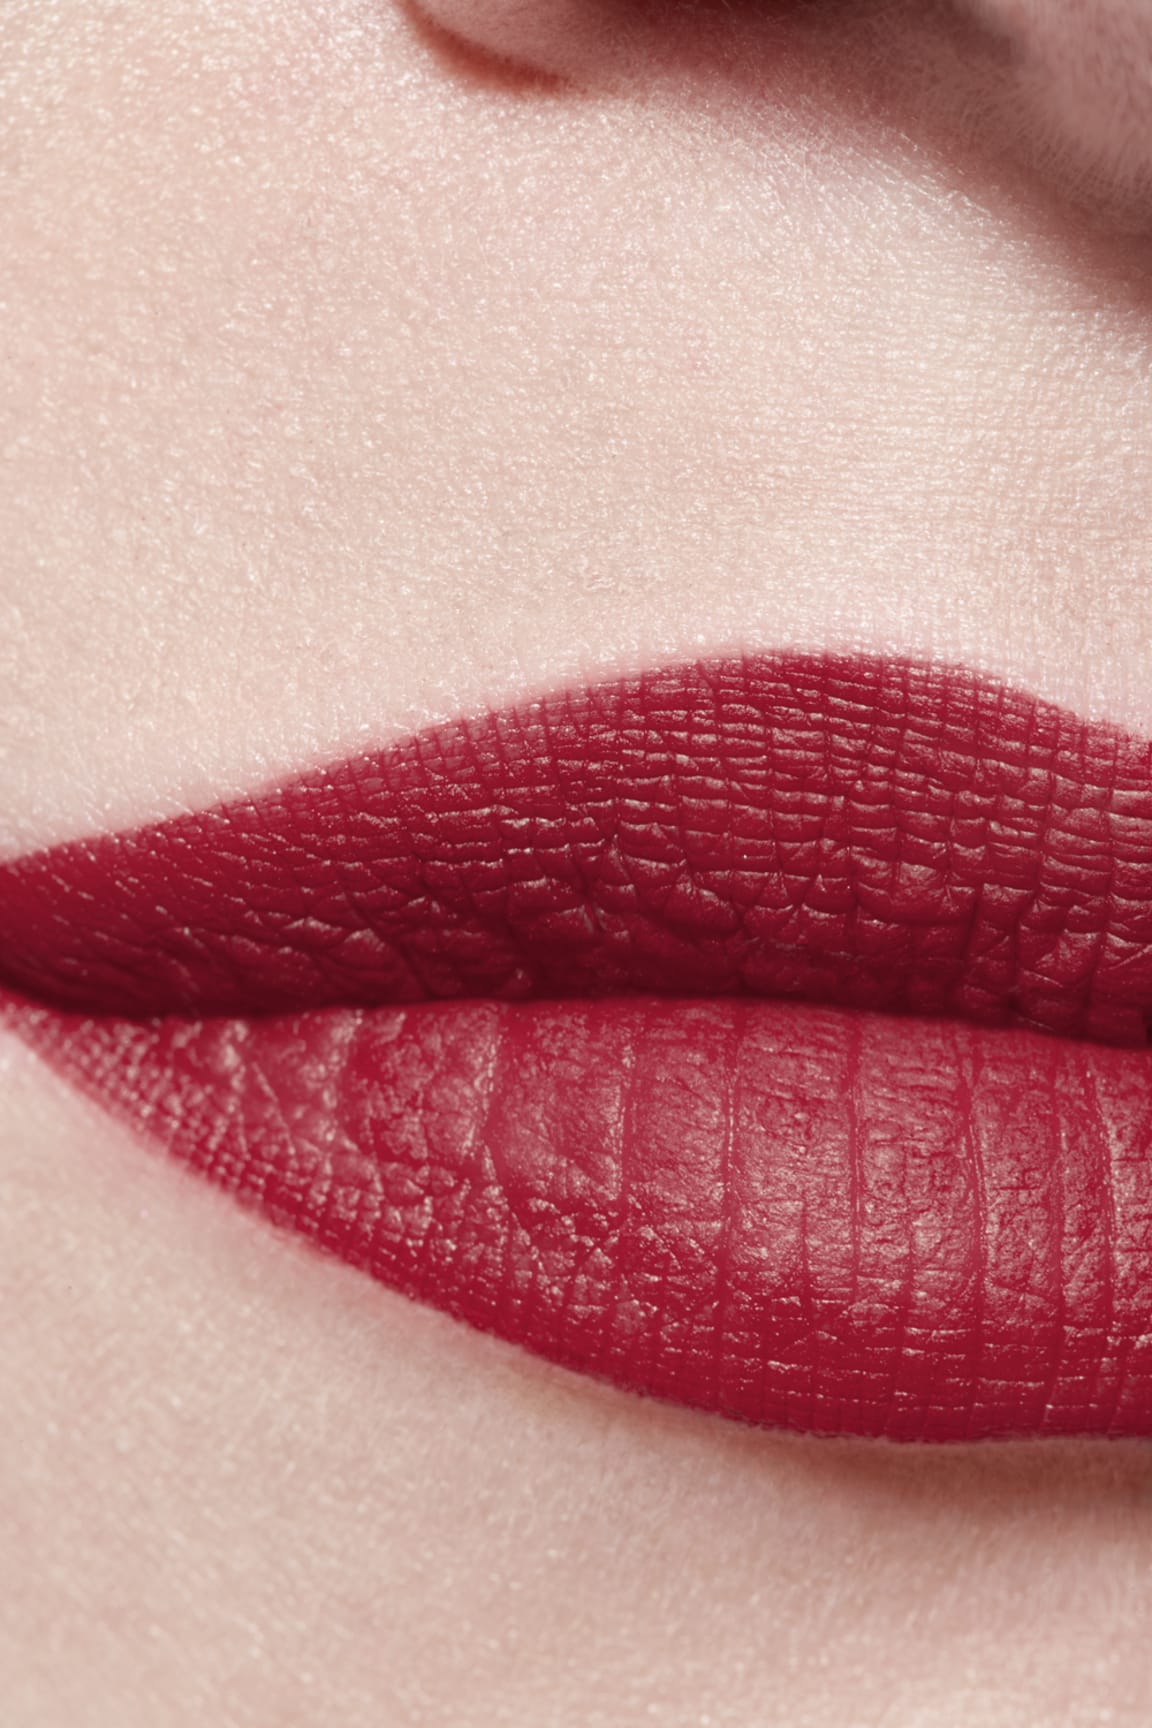 Application makeup visual 3 - ROUGE ALLURE VELVET LE LION DE CHANEL 58 - ROUGE VIE